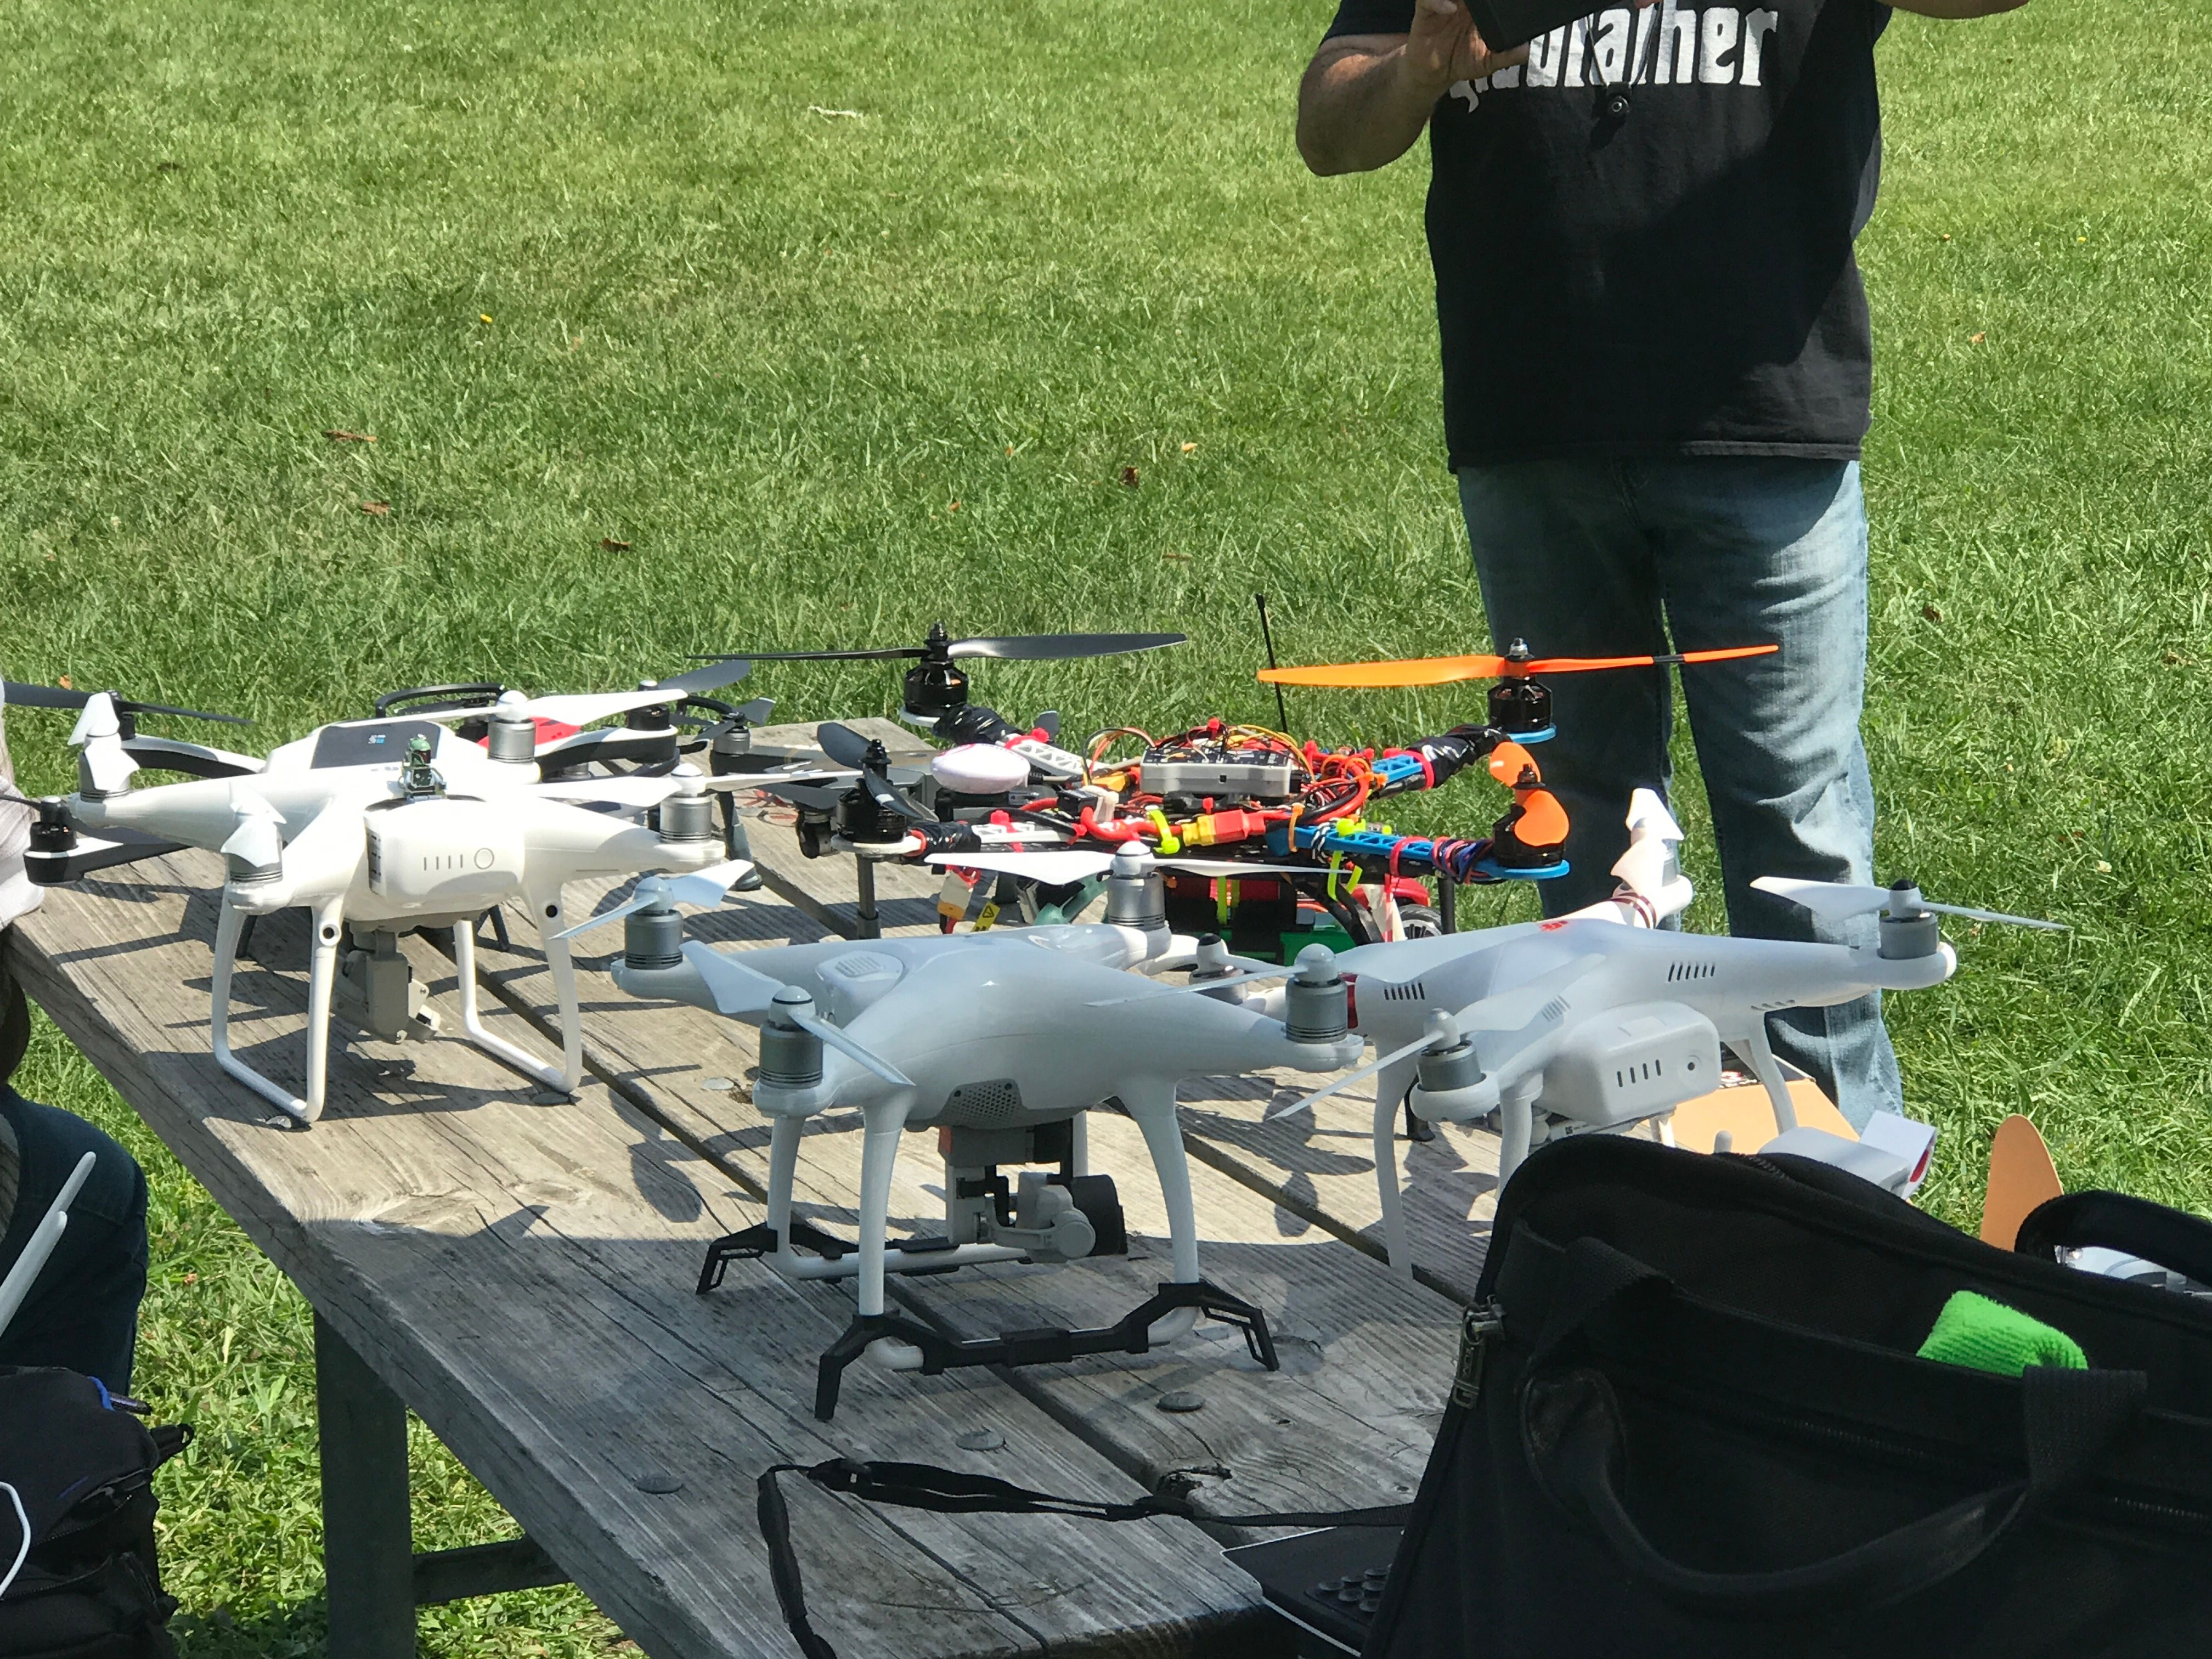 Chicago Area Drone User Group